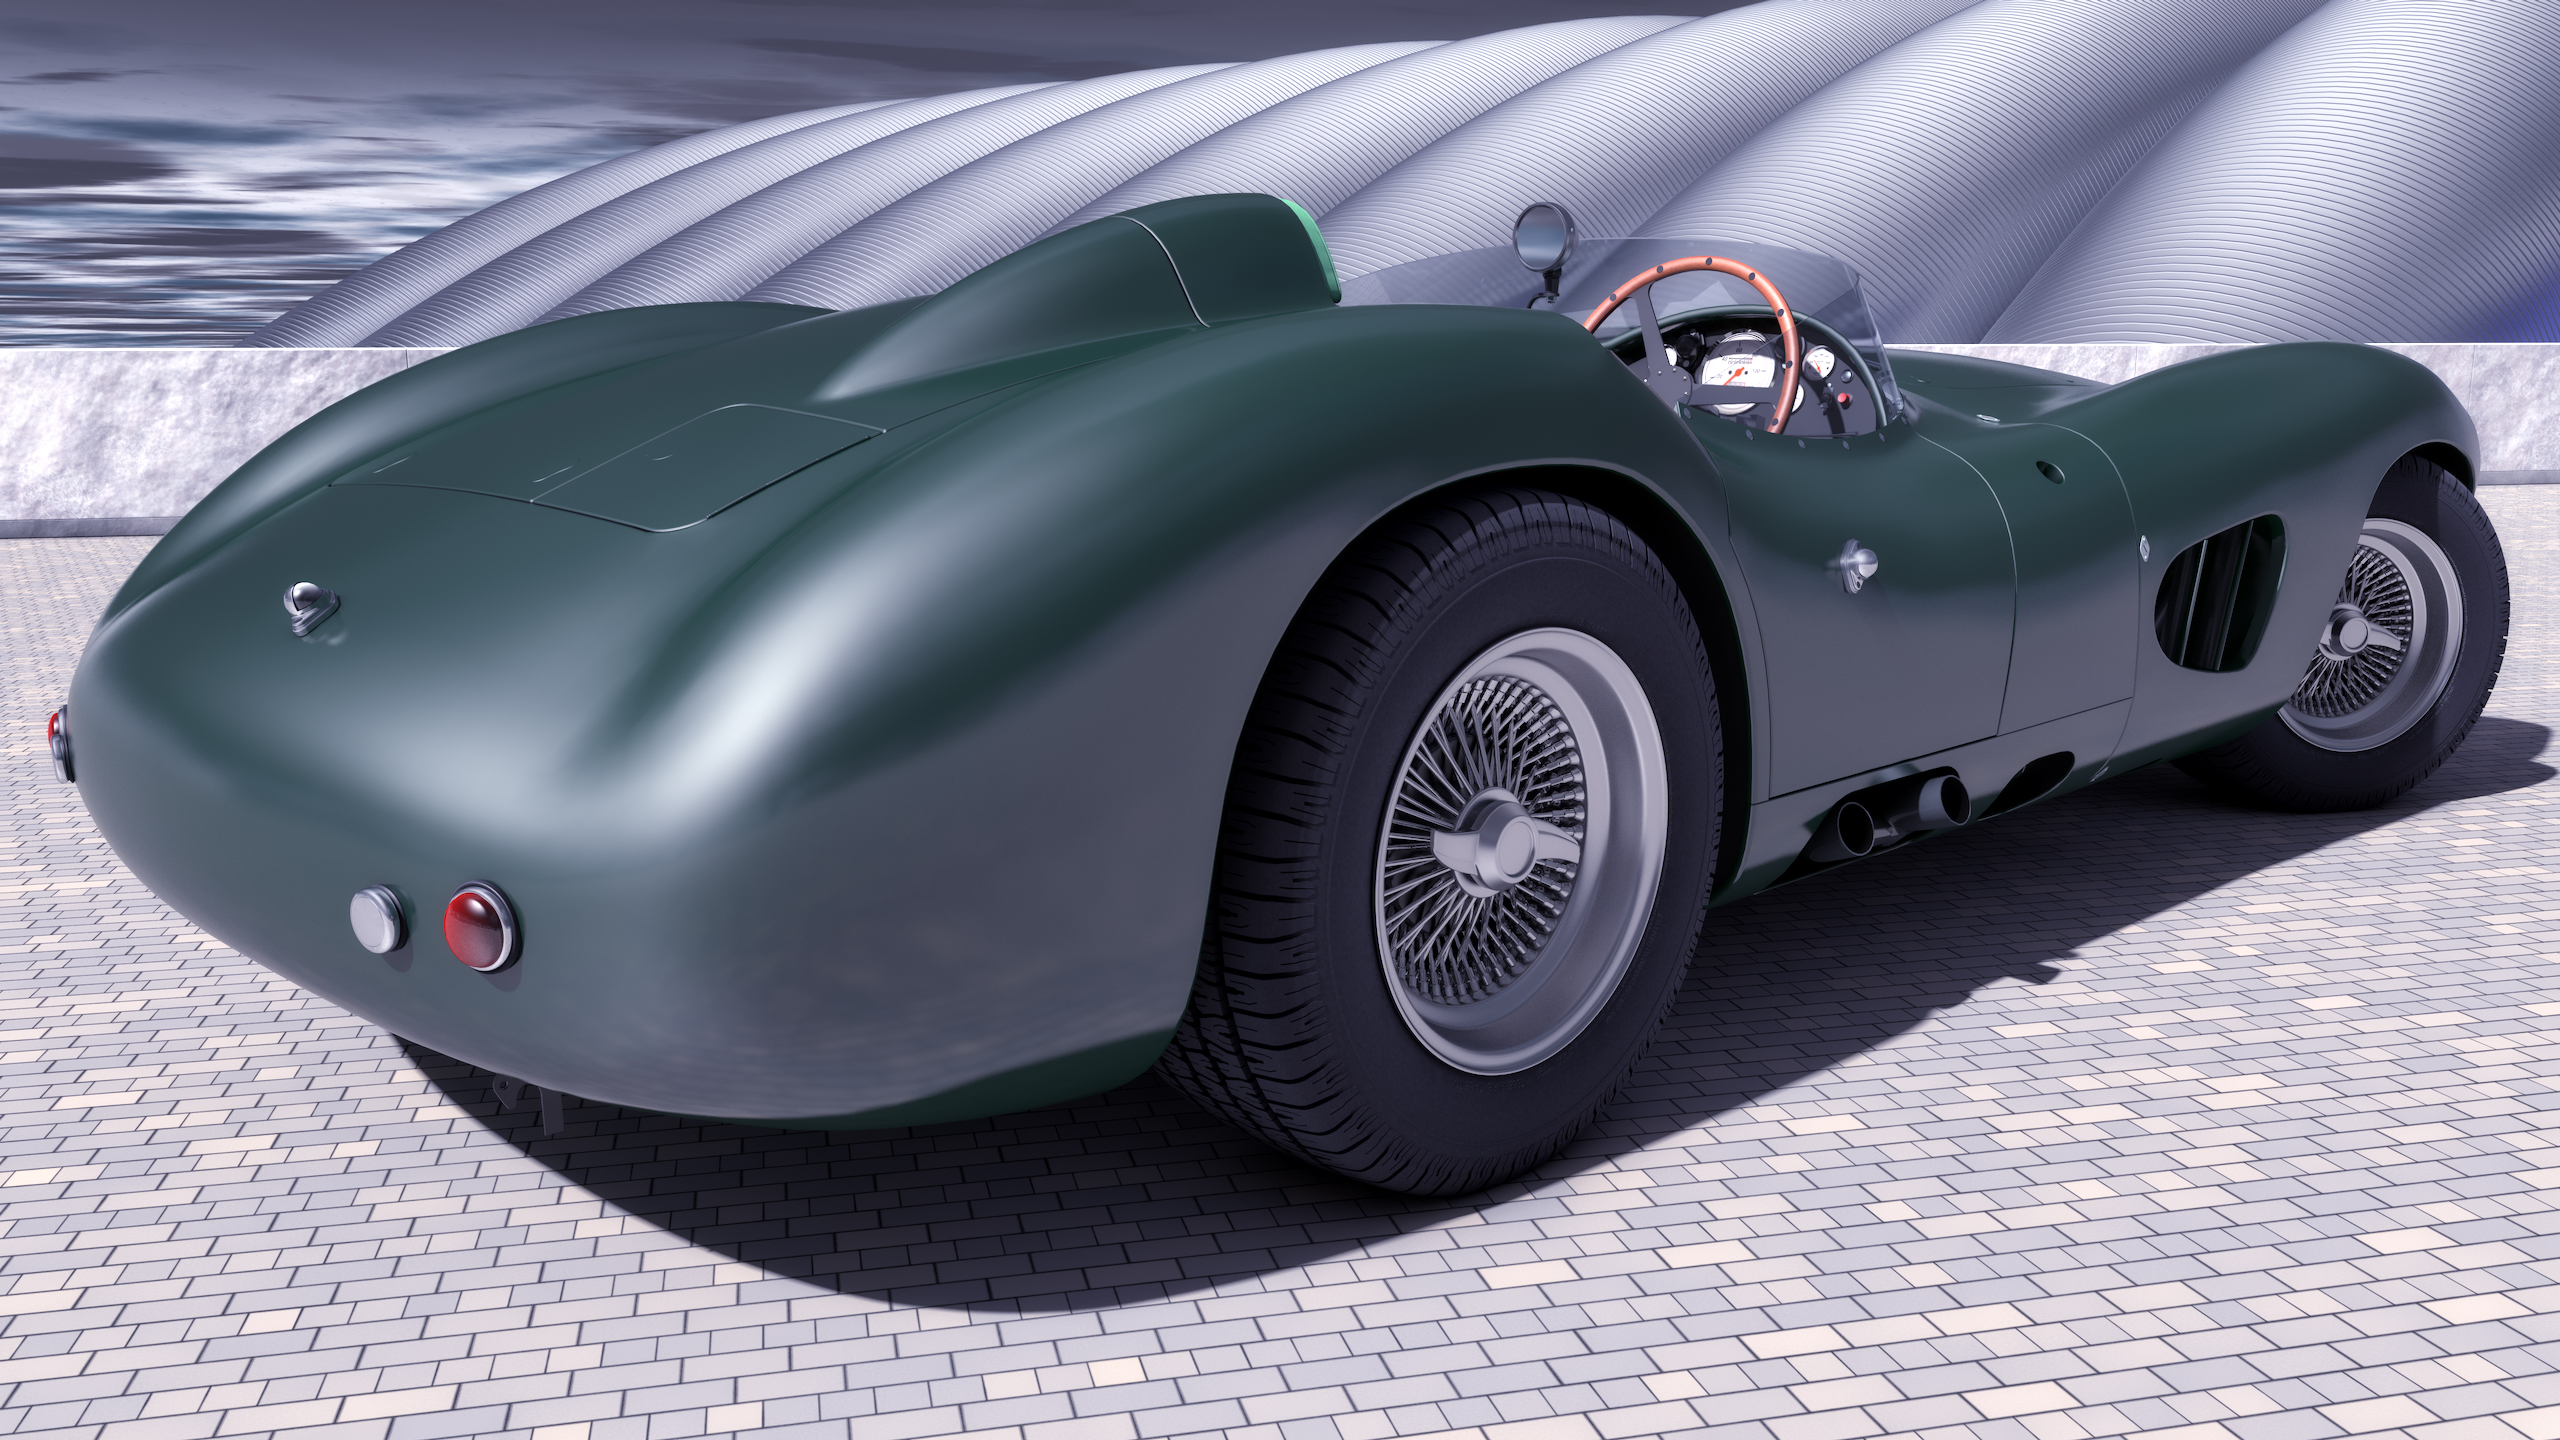 1958 Aston Martin DBR1 by SamCurry